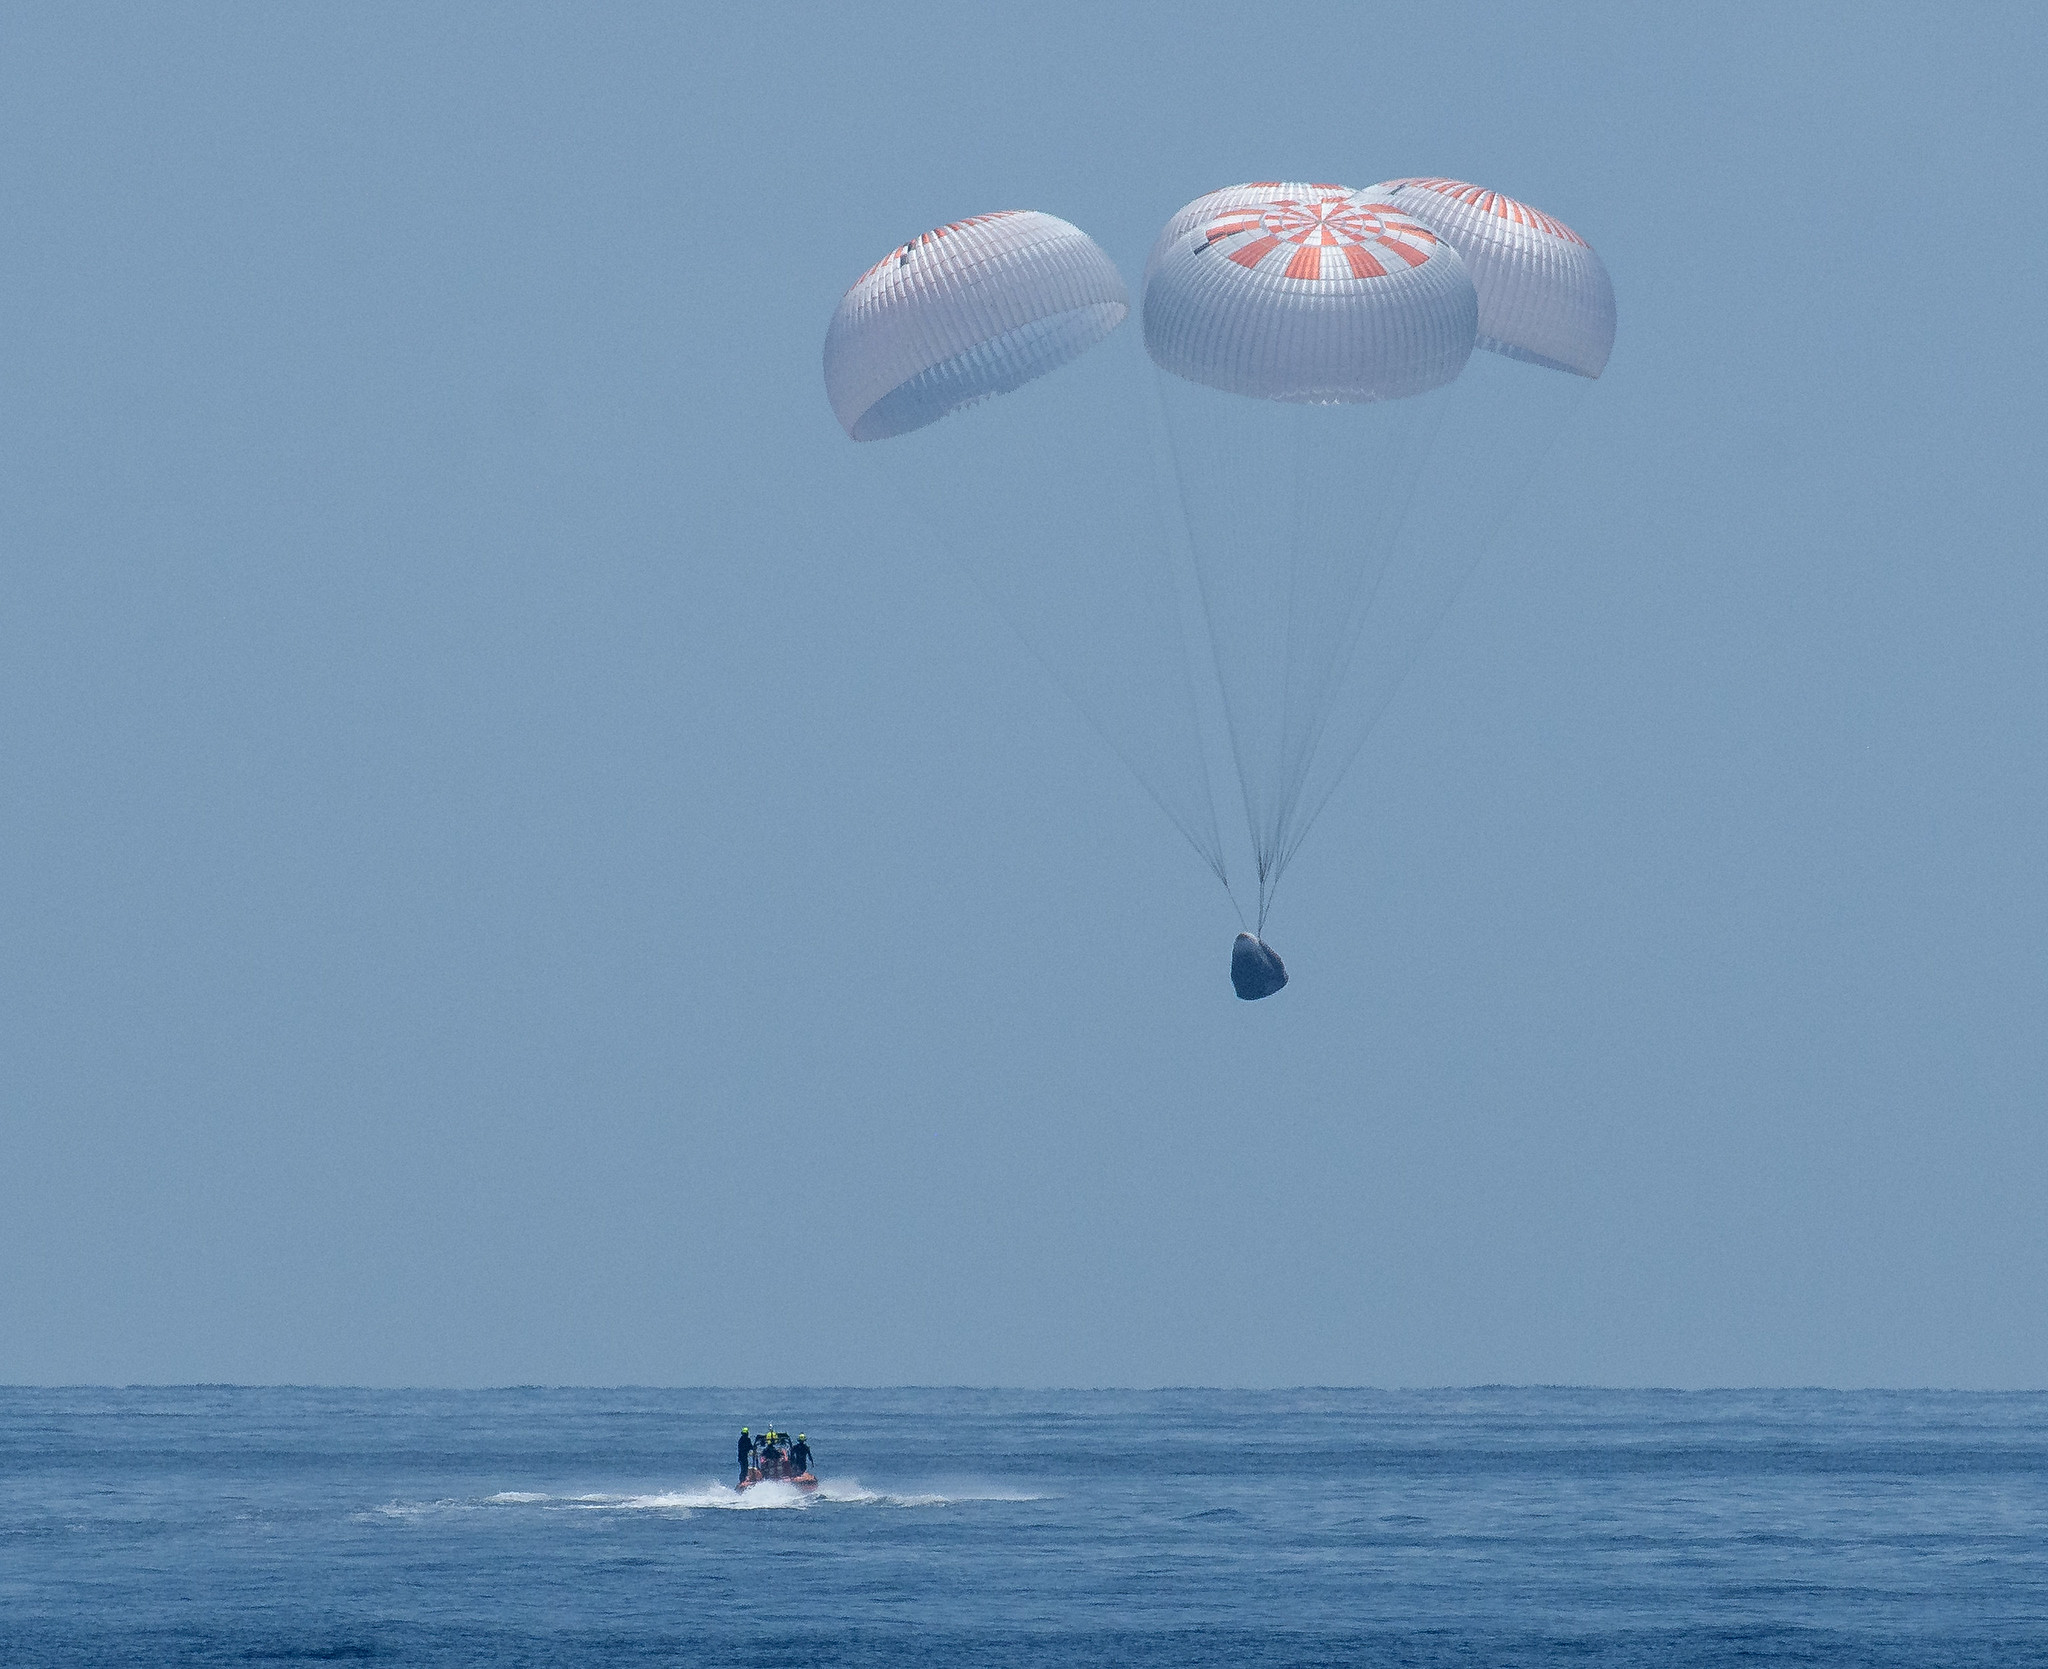 The SpaceX Crew Dragon Endeavour spacecraft is seen as it lands with NASA astronauts Robert Behnken and Douglas Hurley onboard in the Gulf of Mexico off the coast of Pensacola, Florida, Sunday, Aug. 2, 2020.